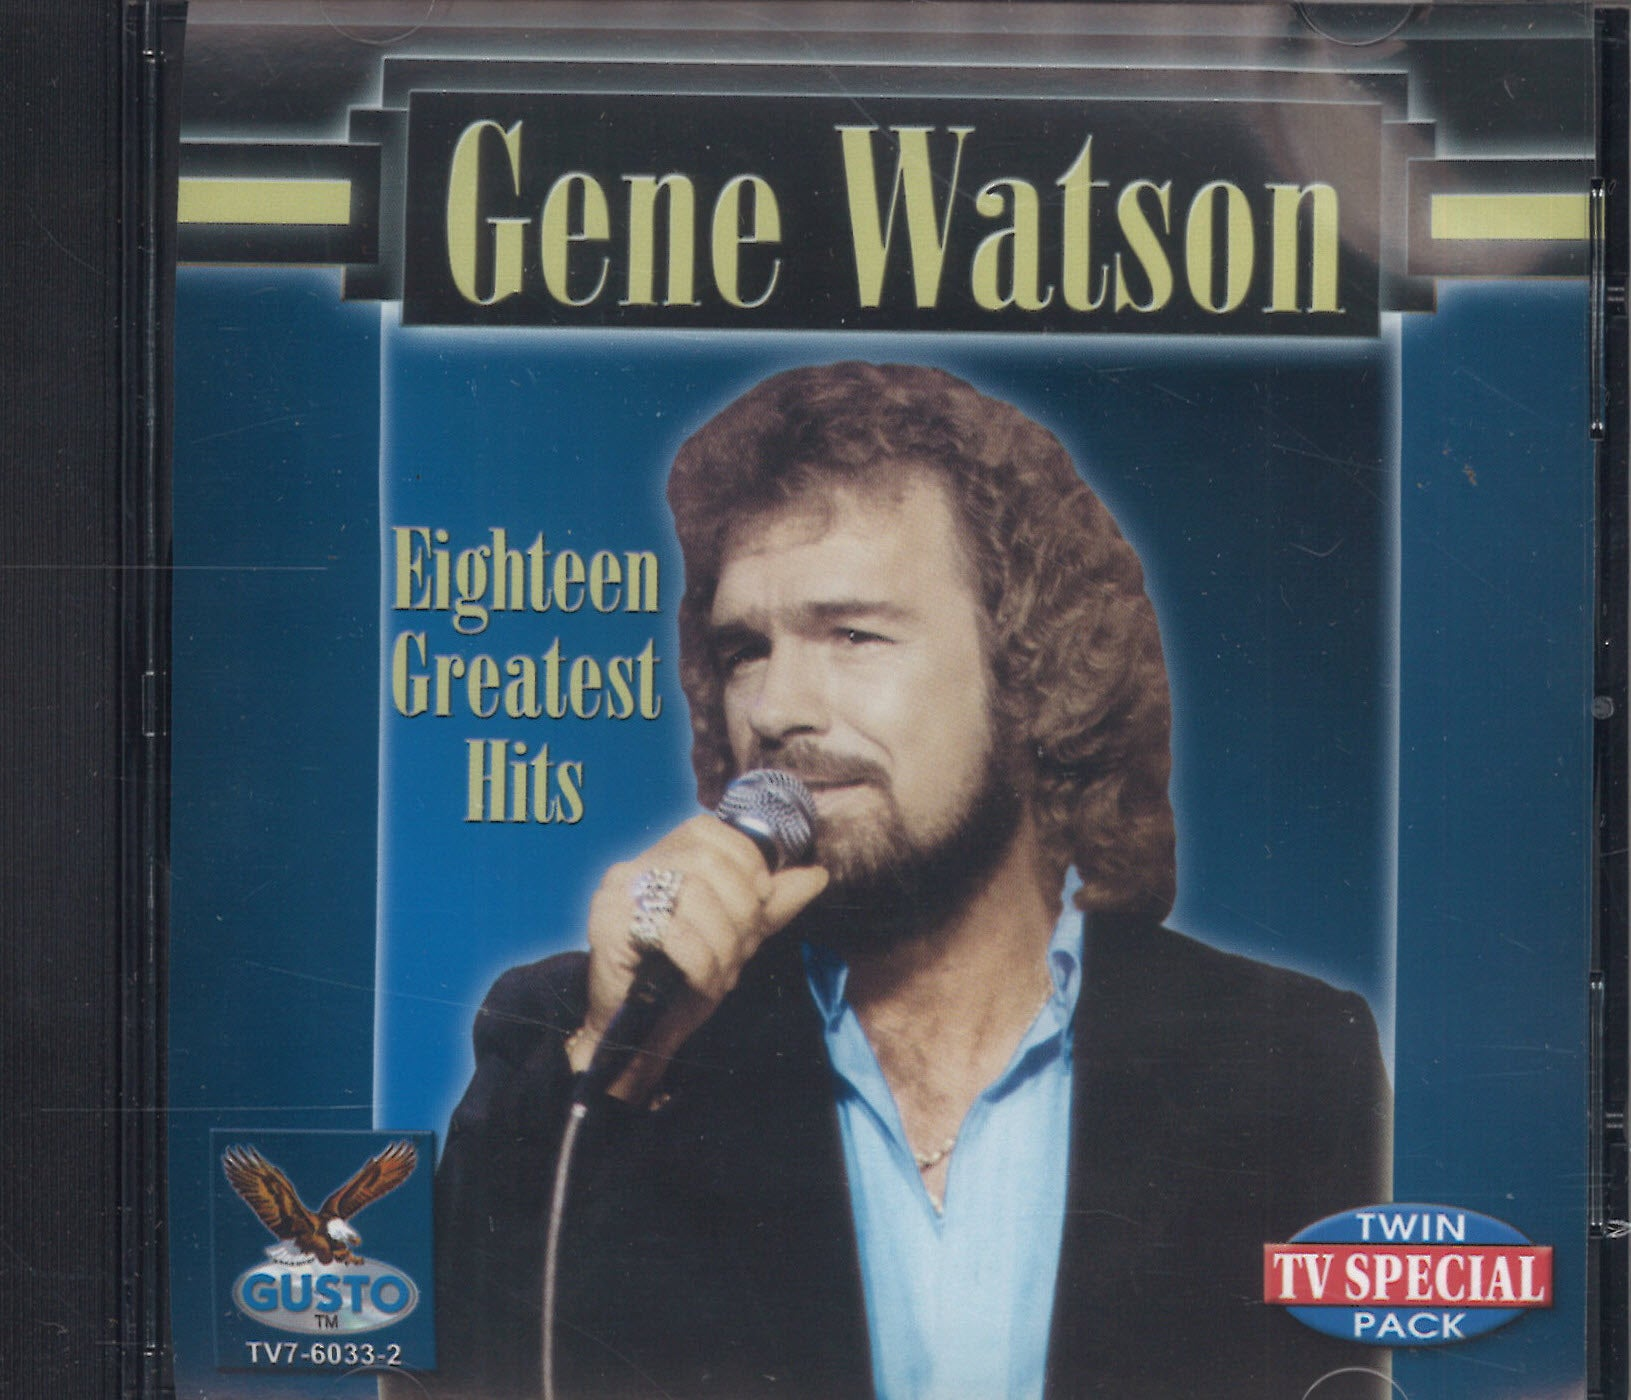 Gene Watson Eighteen Greatest Hits